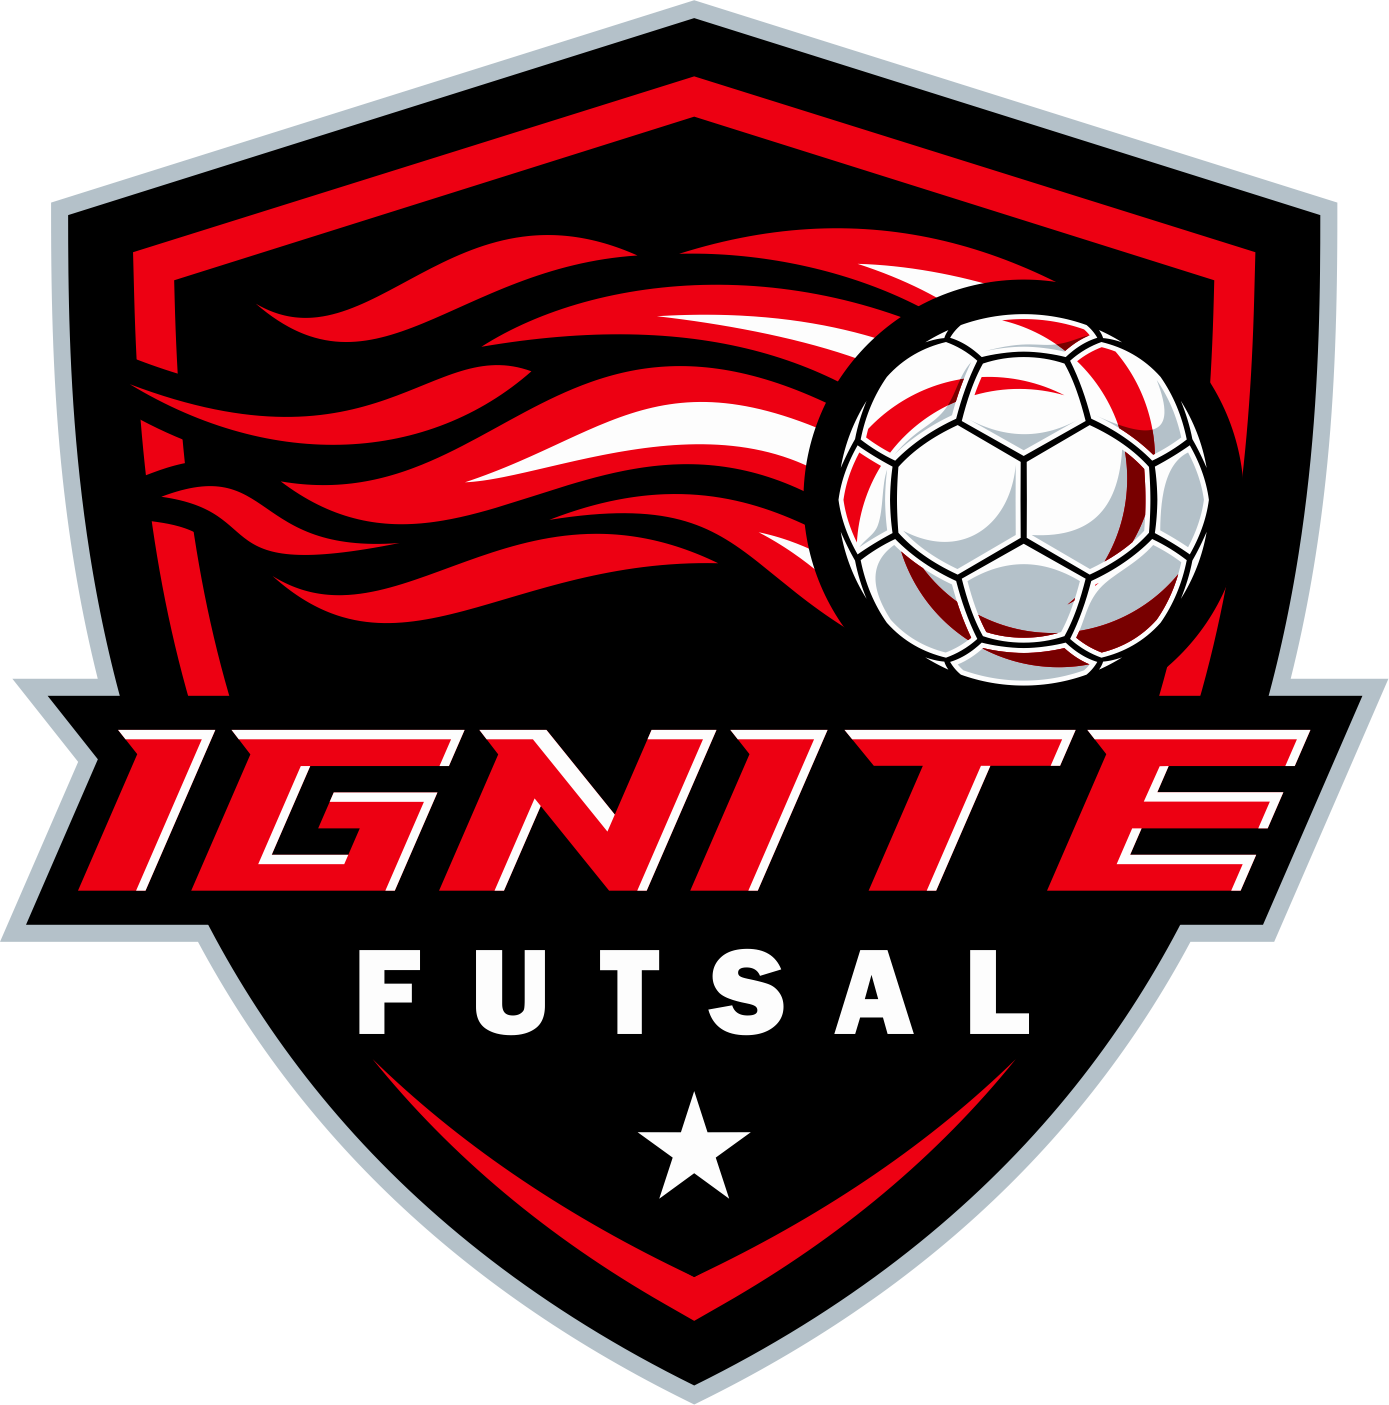 Create a unique and powerful logo for a youth sports company - Ignite Futsal